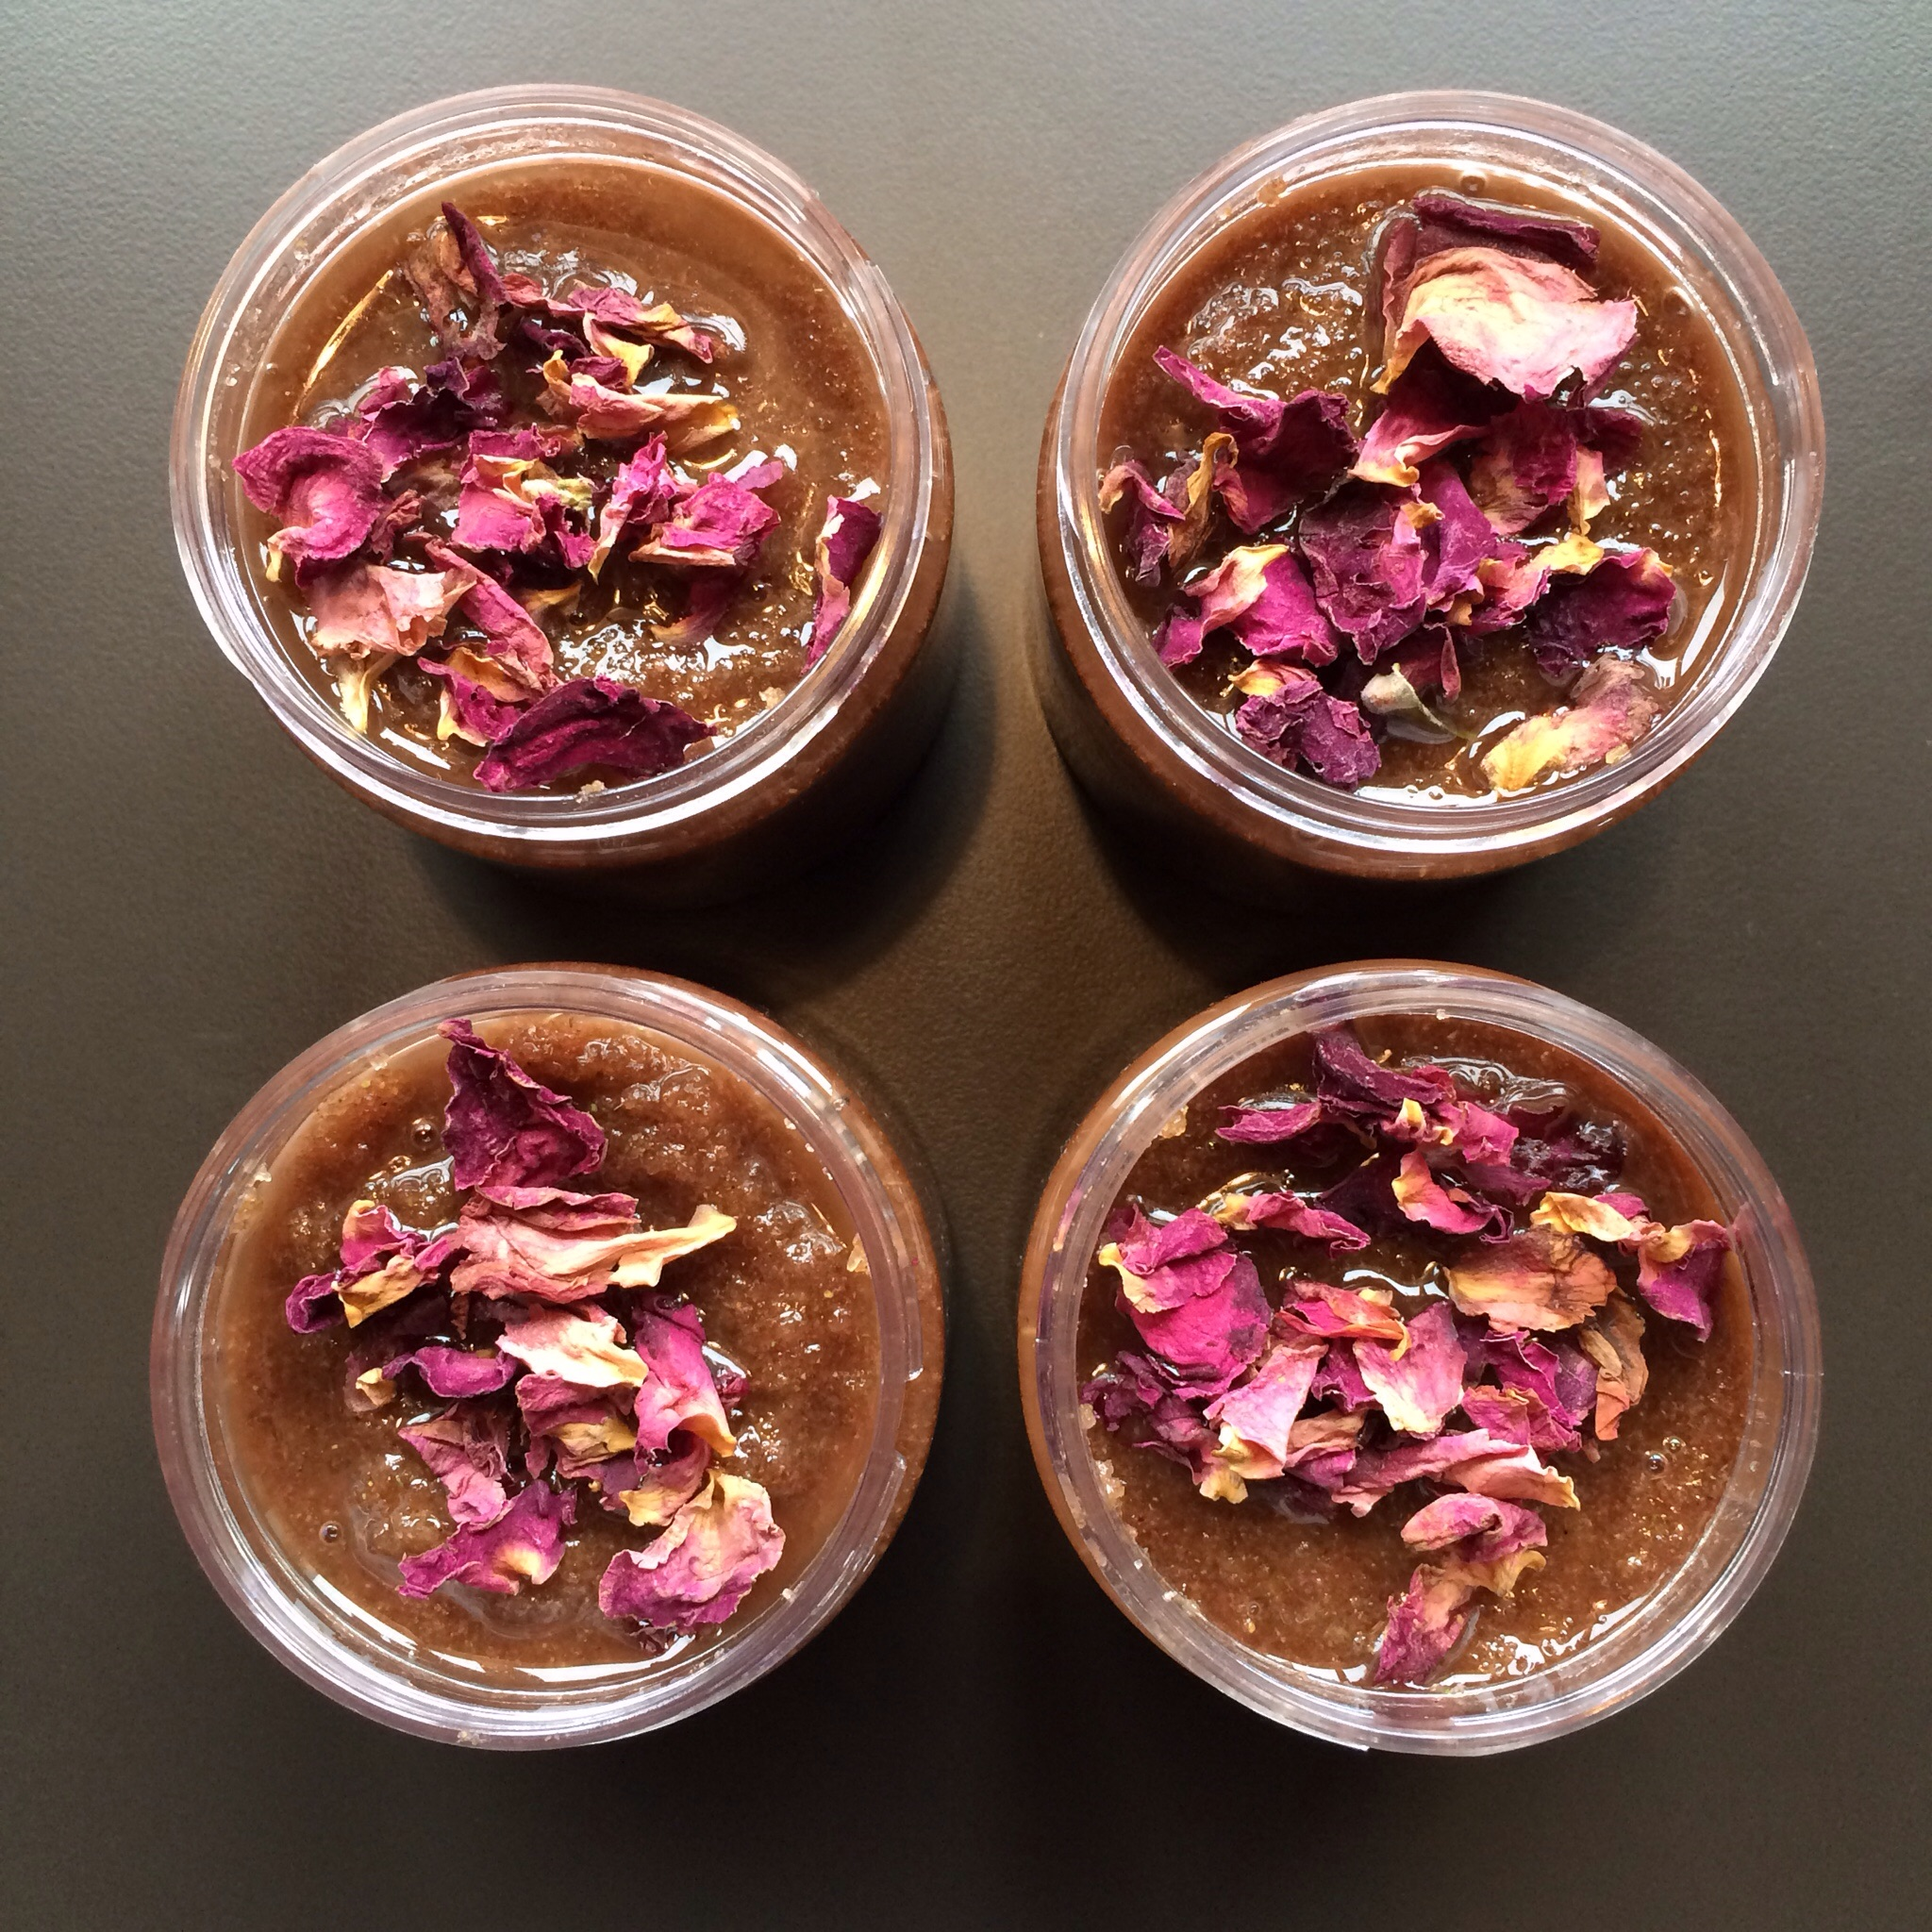 Rose sugar scrub. More about this later.